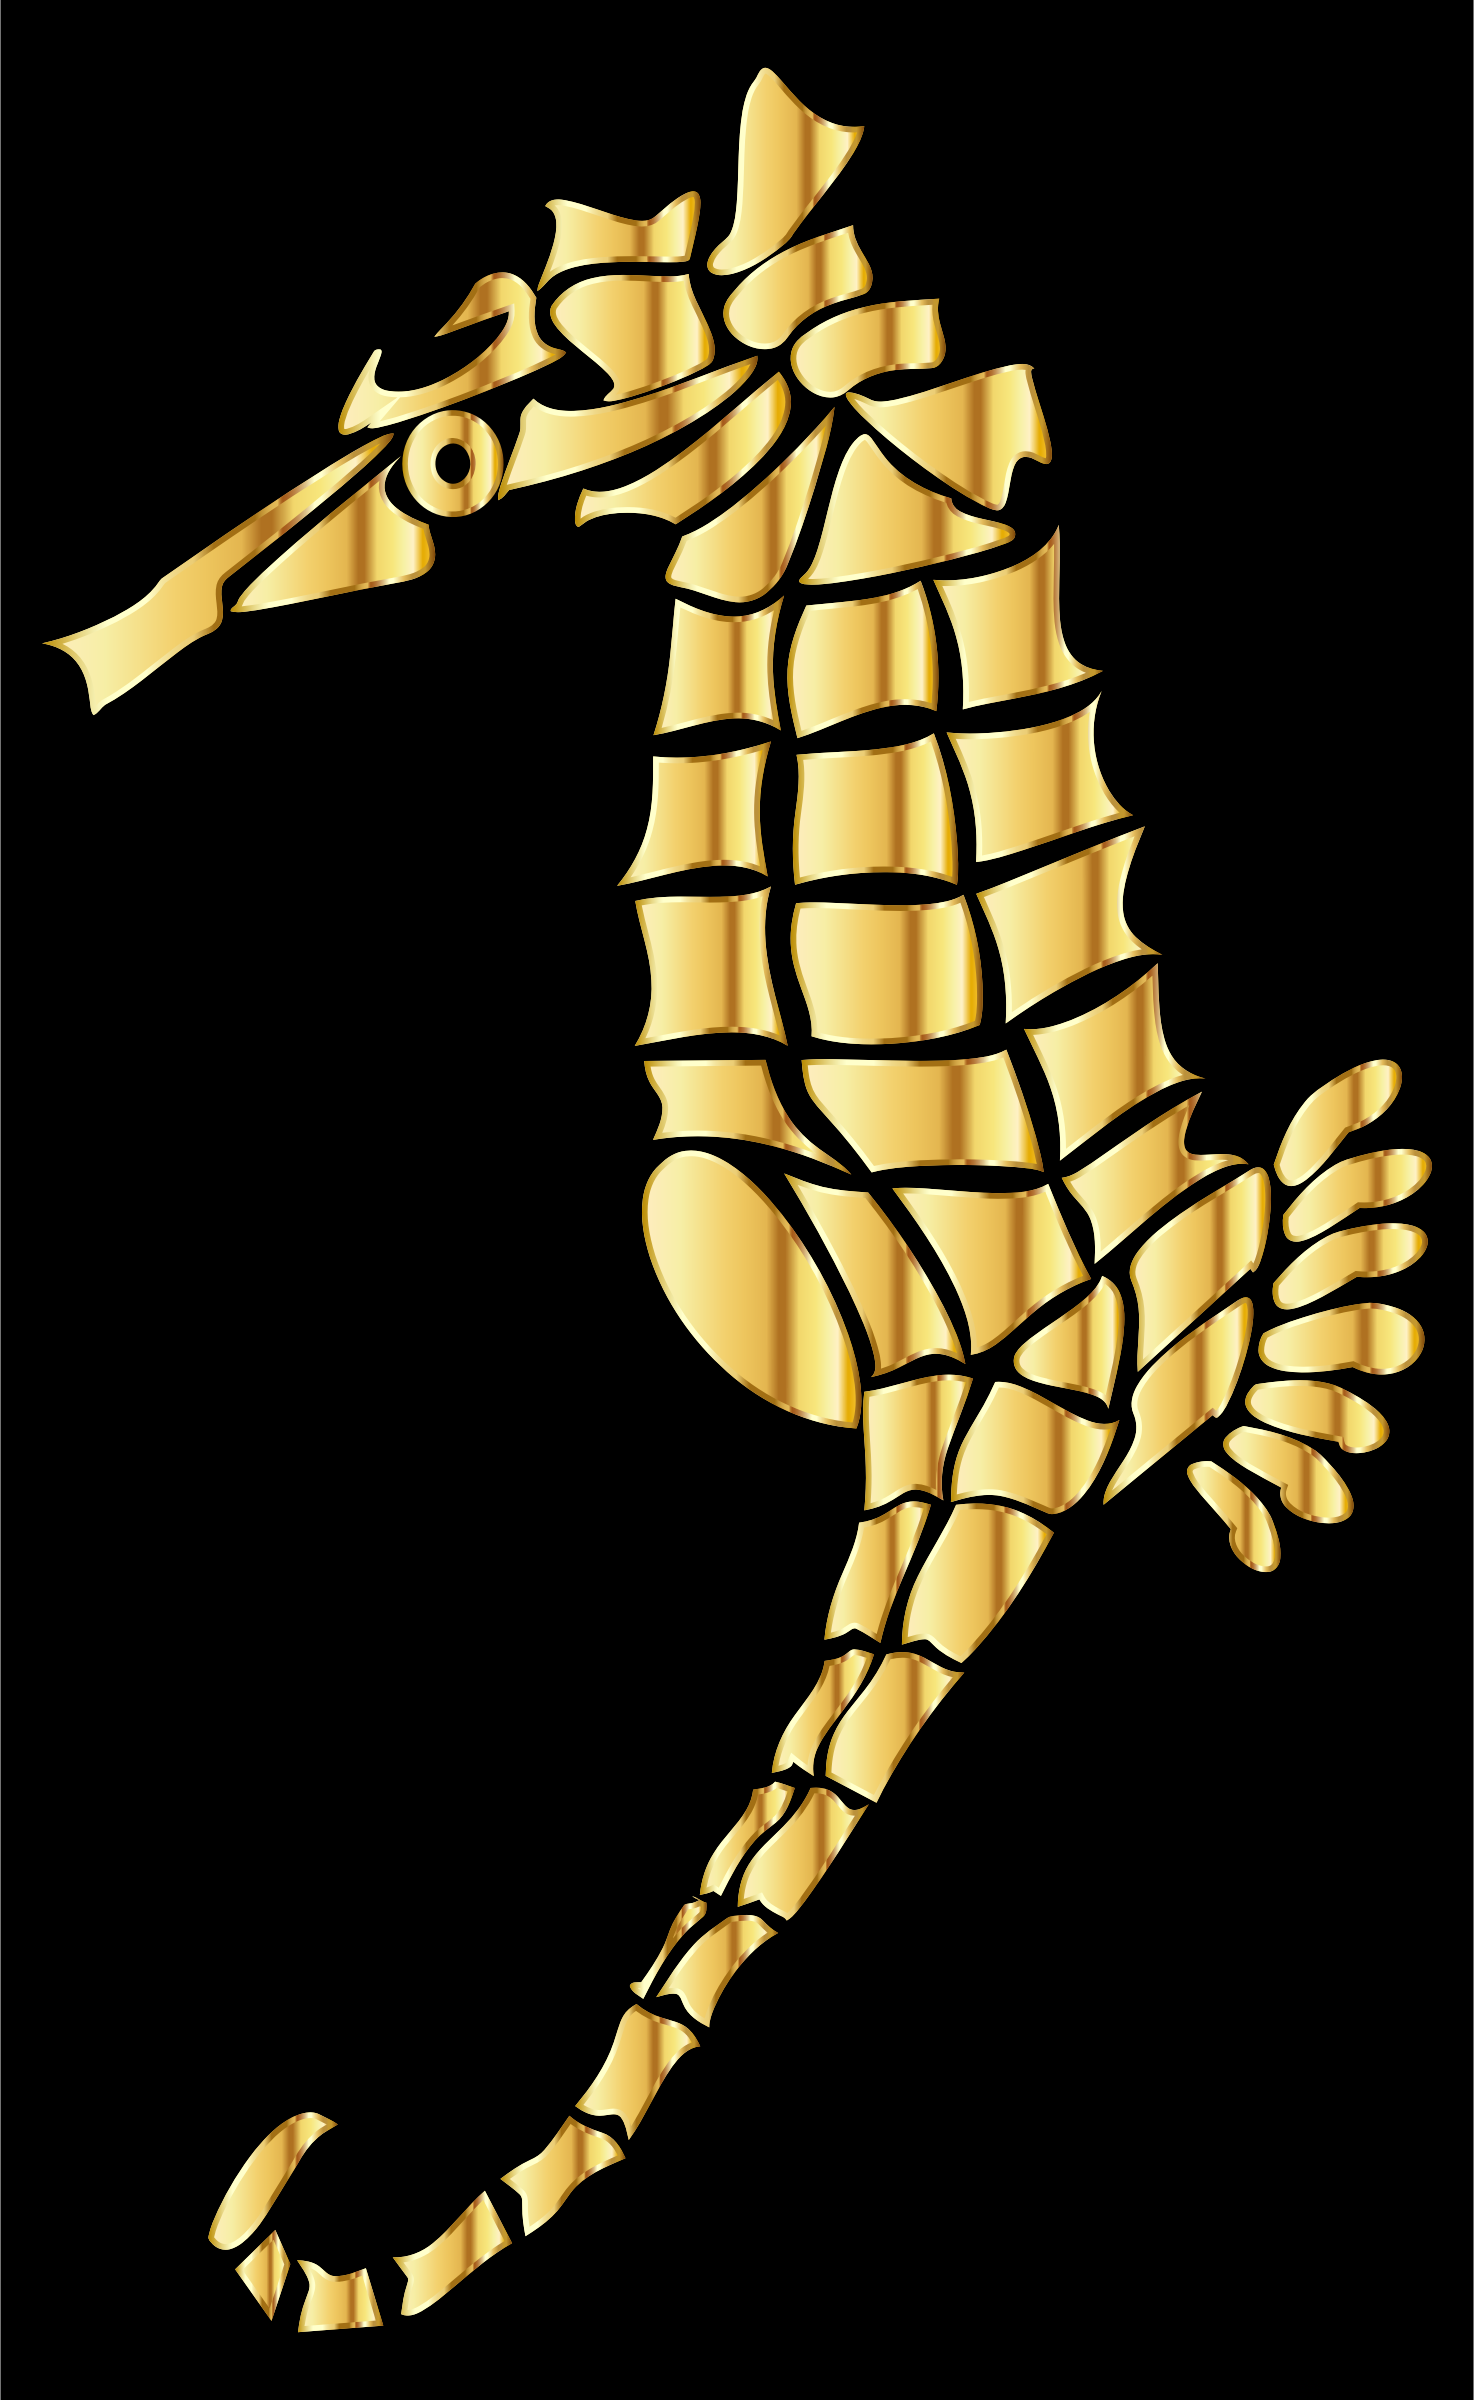 Gold Stylized Seahorse Silhouette by GDJ